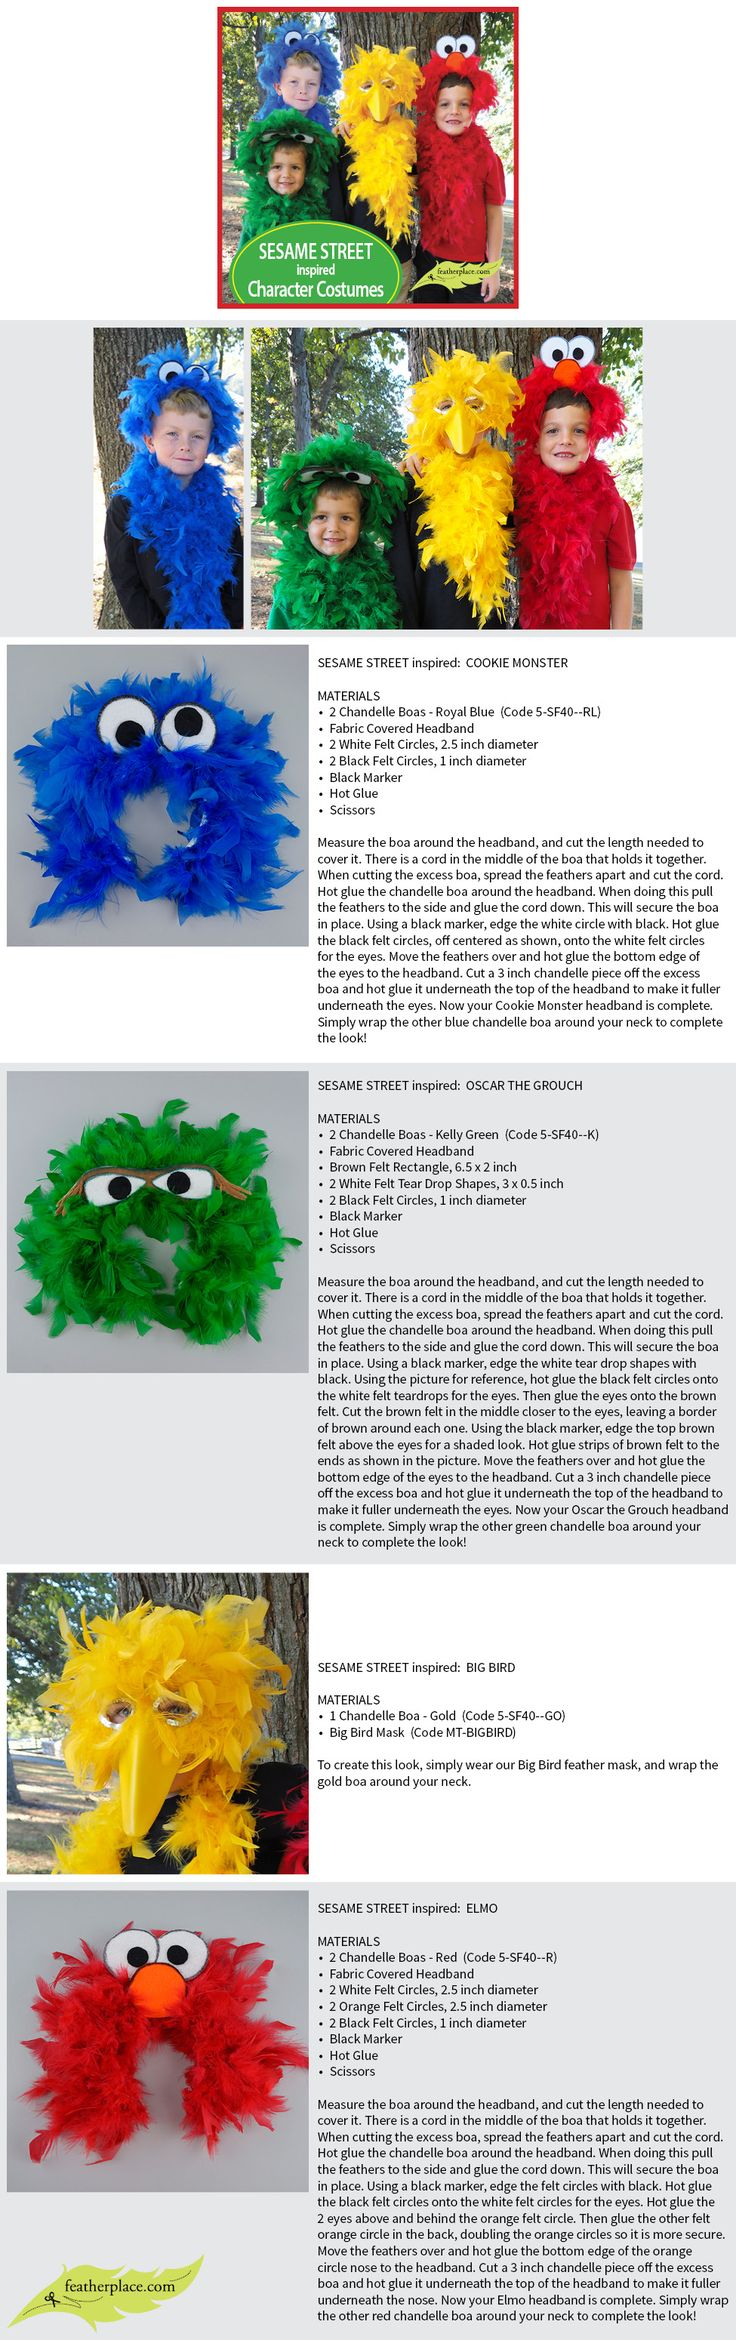 Best 25+ Sesame street costumes ideas on Pinterest | Elmo and ...